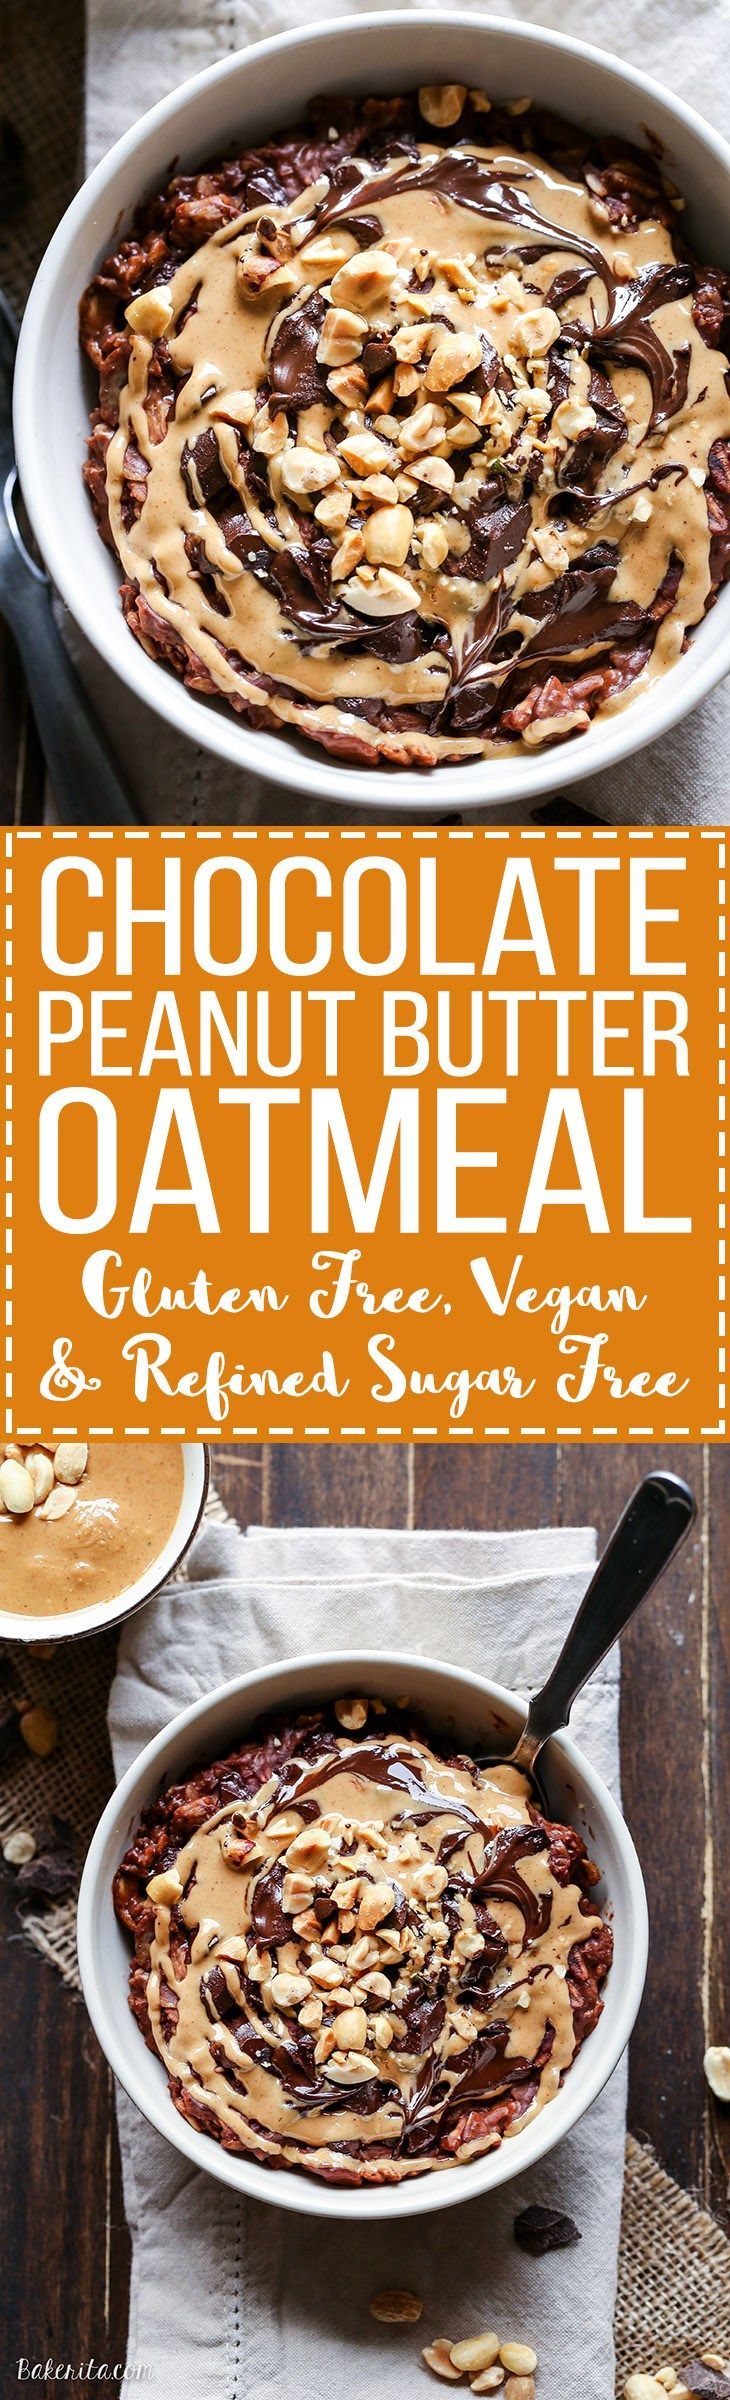 This Chocolate Peanut Butter Oatmeal tastes like a peanut butter cup, but it's sweetened with just a ripe banana! You'll love to wake up to this gluten-free, refined sugar-free + vegan breakfast. (Almond Butter Overnight Oats)